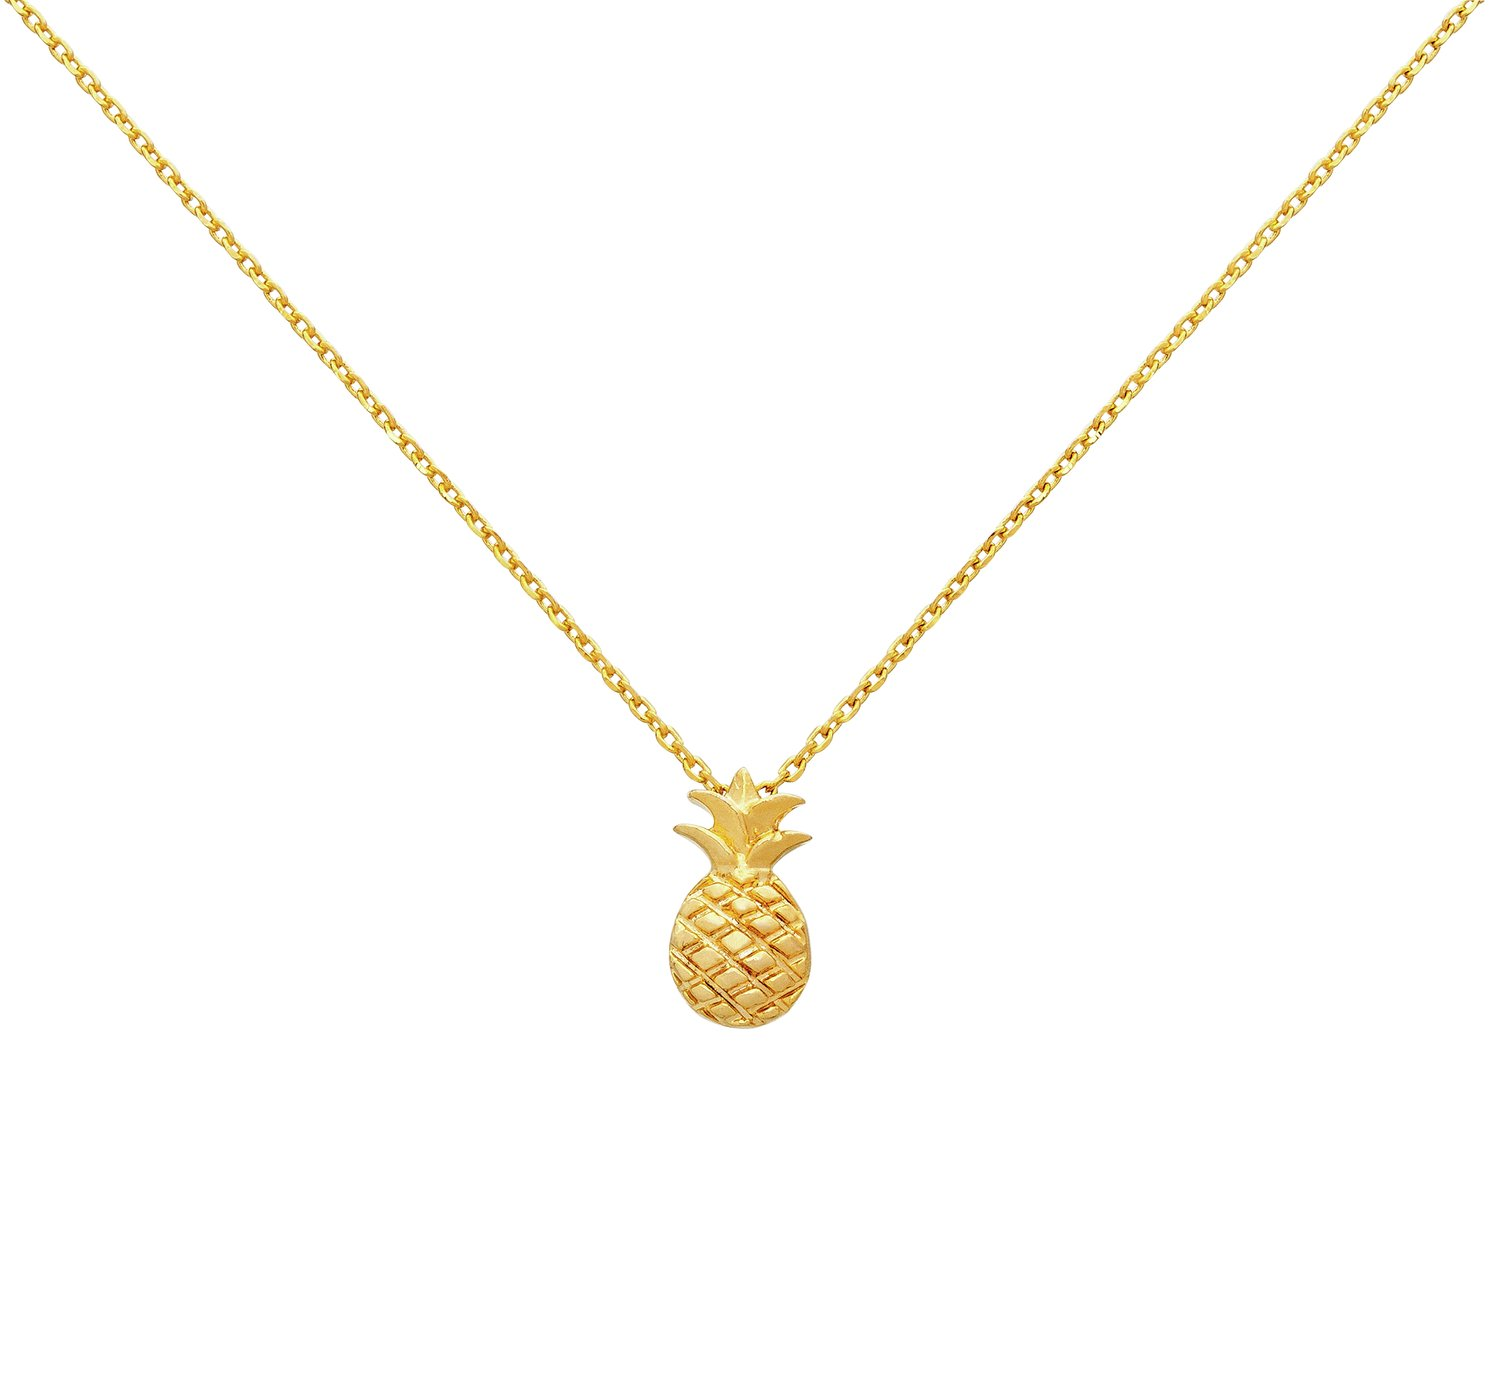 Image of Amelia Grace Gold Colour Pineapple Necklace